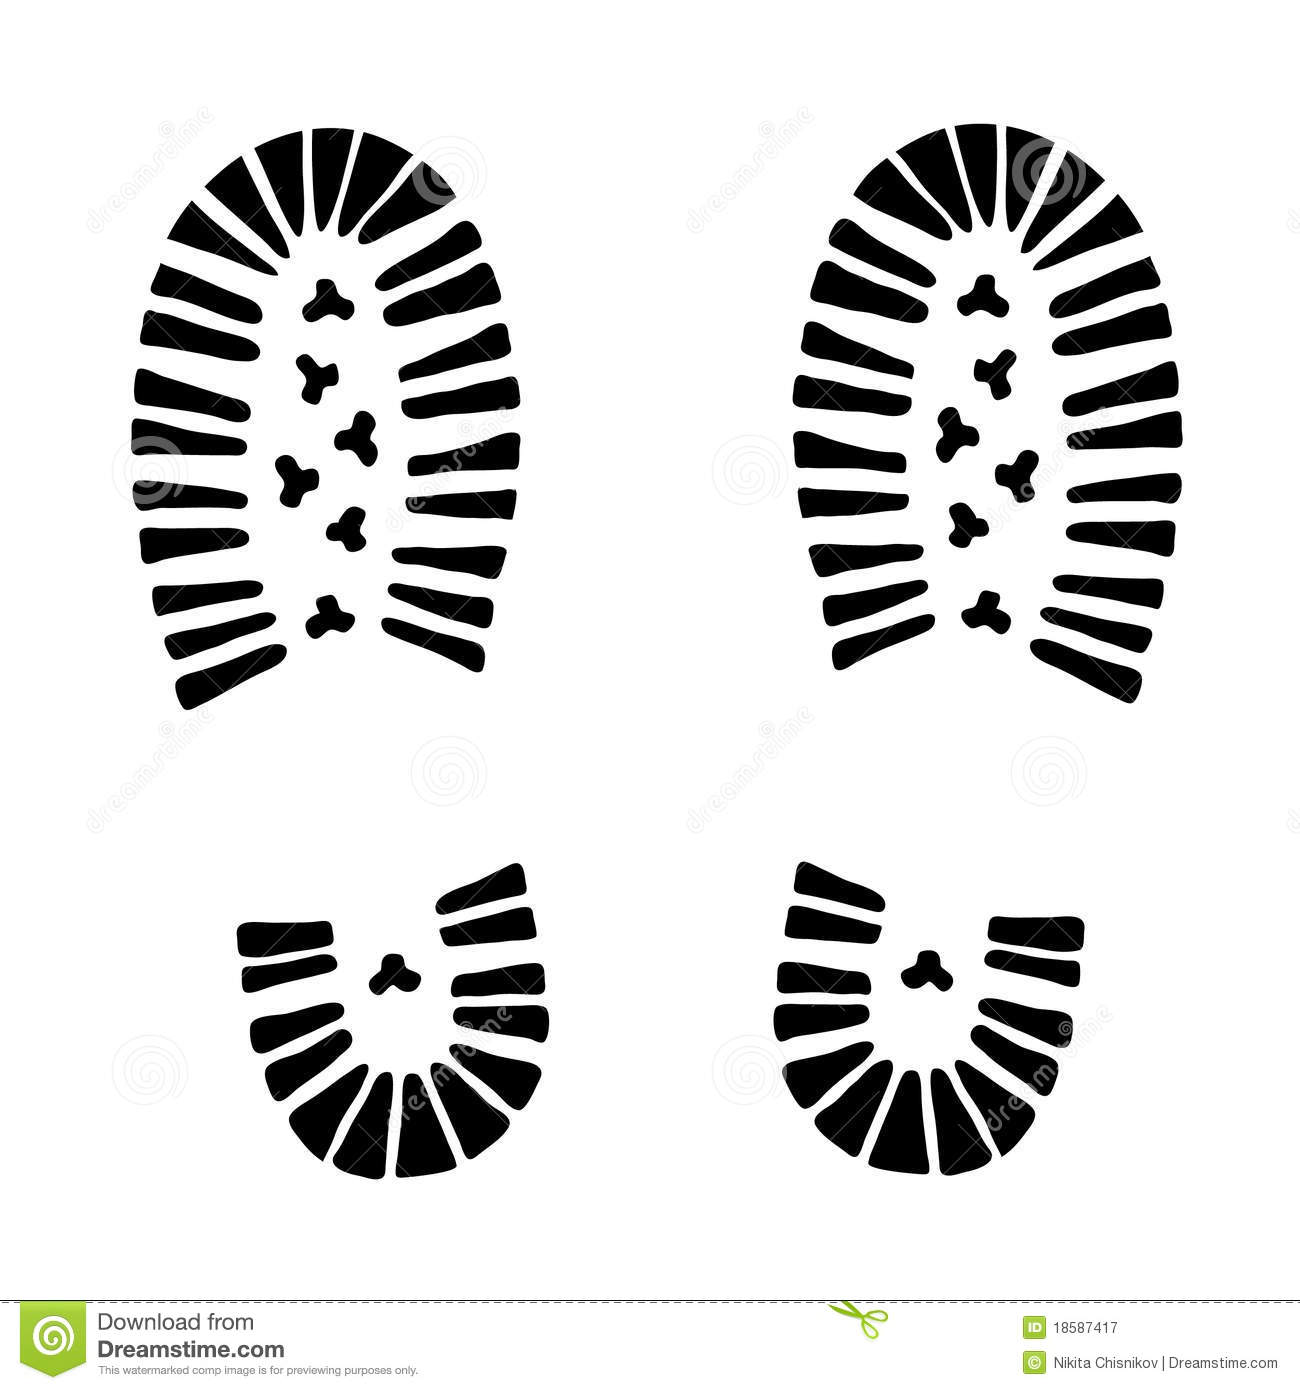 hiking boot footprint clipart - Clipground